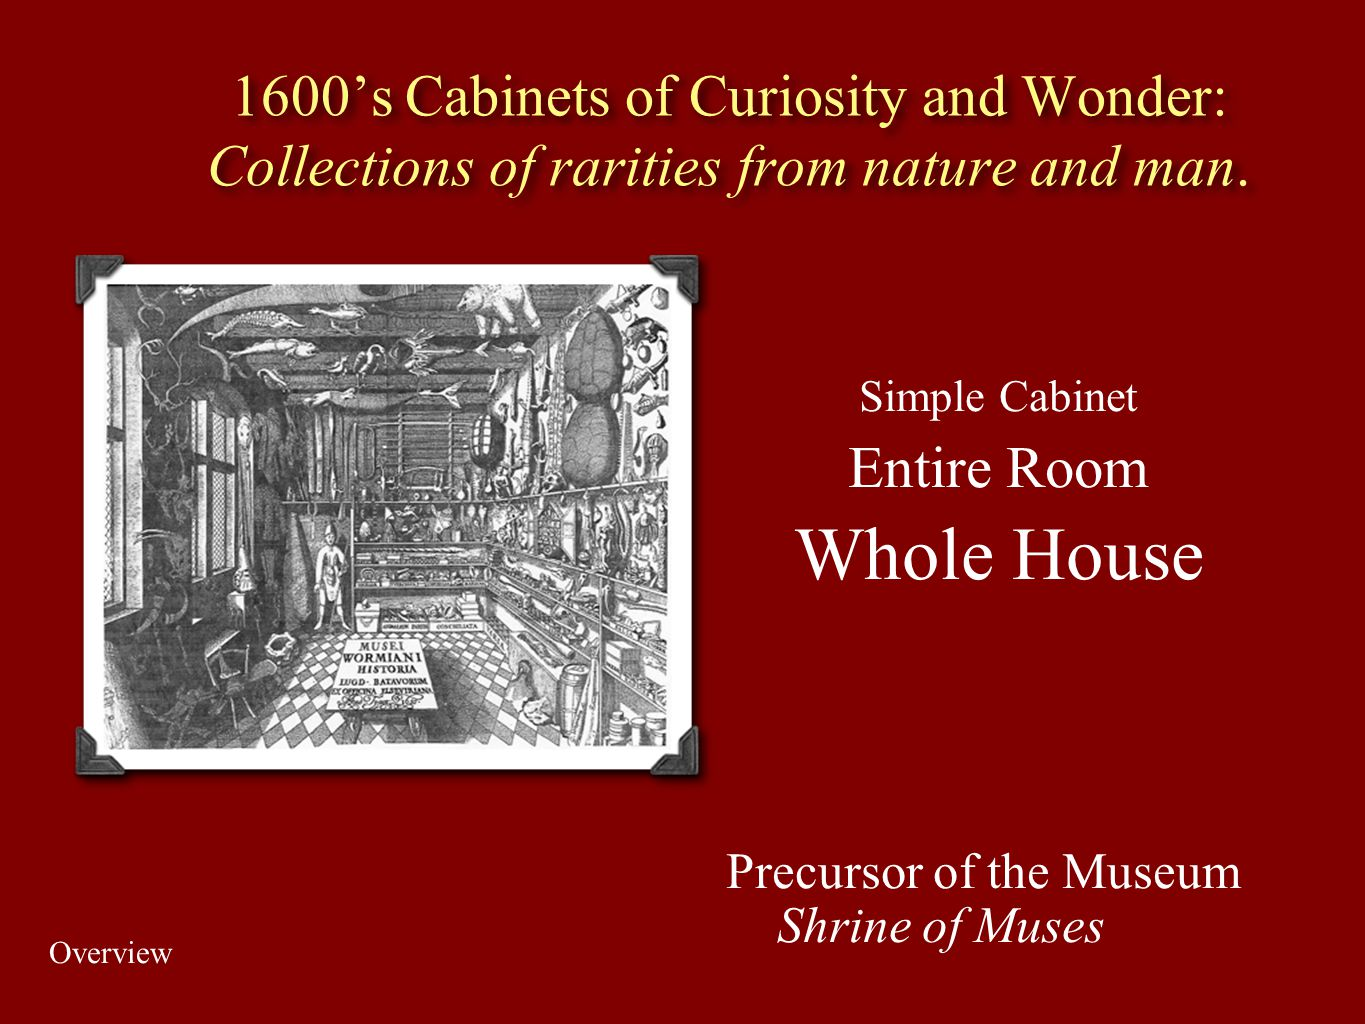 1600's Cabinets of Curiosity and Wonder: Collections of rarities from nature and man.